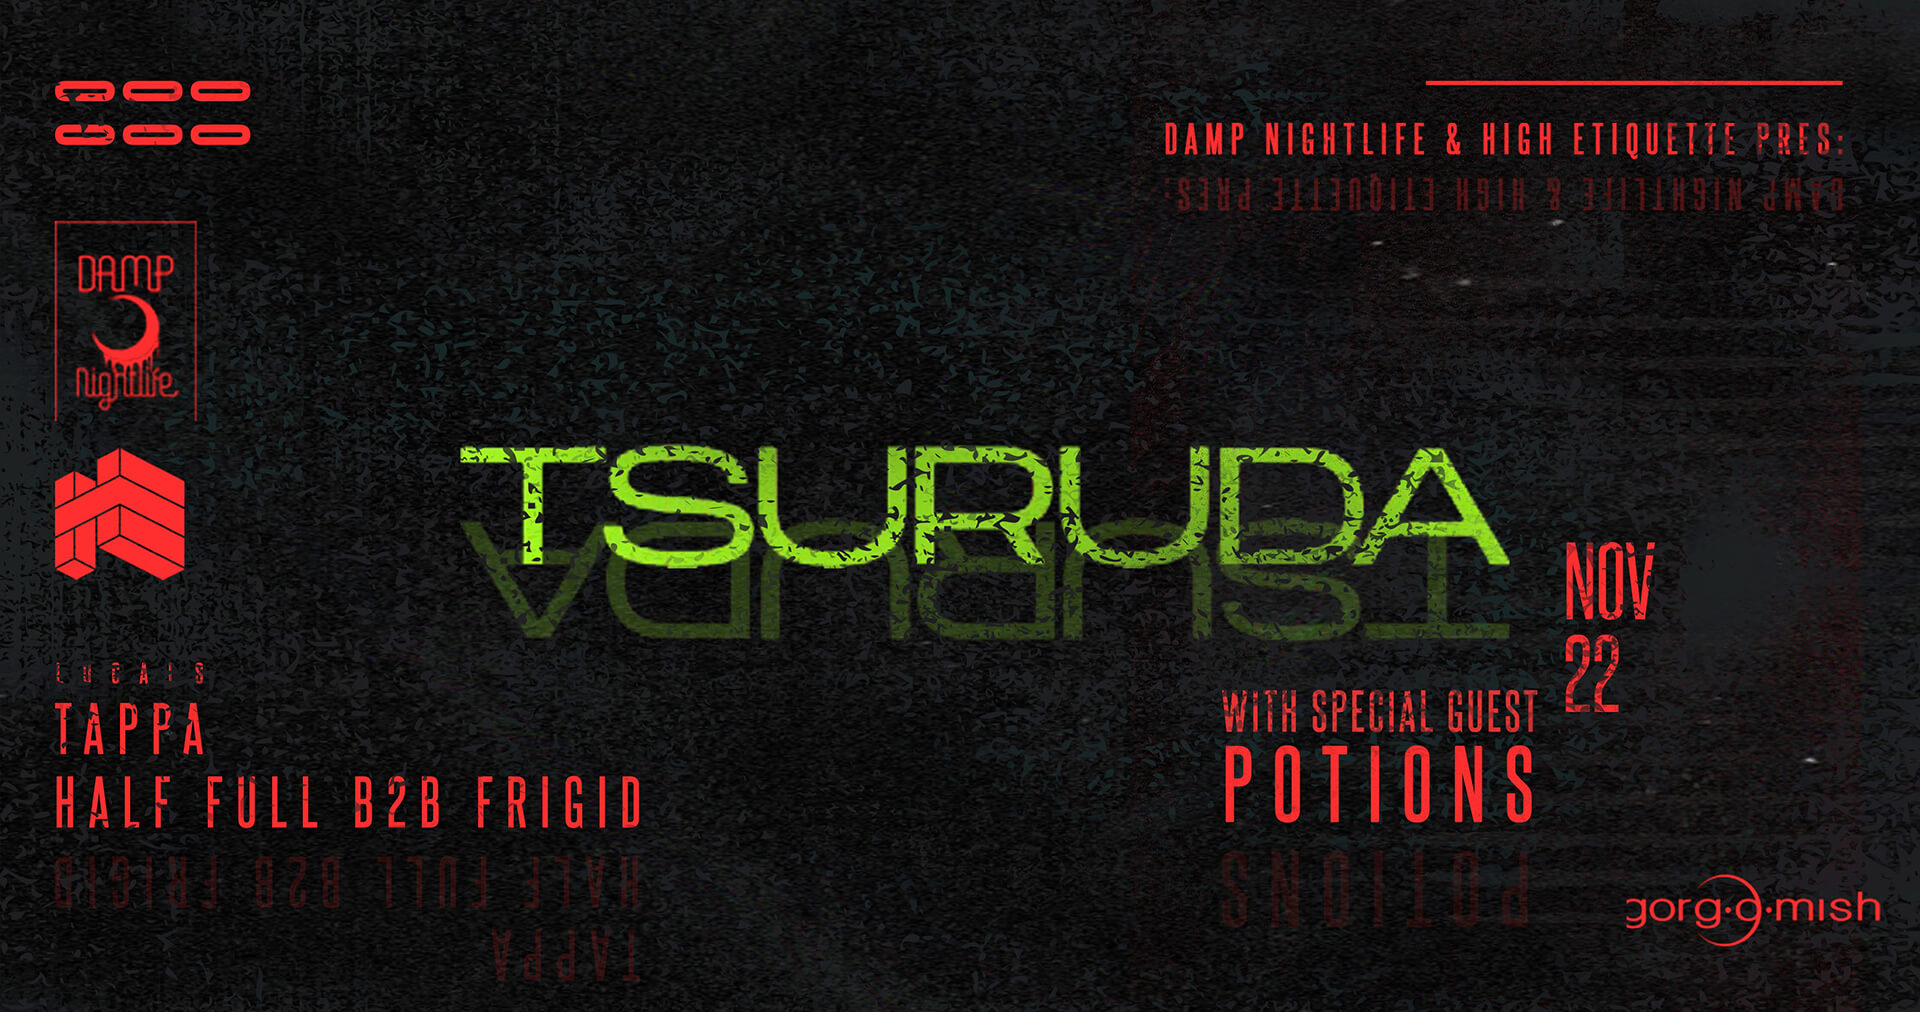 Damp Nightlife & High Etiquette pres: Tsuruda with potions